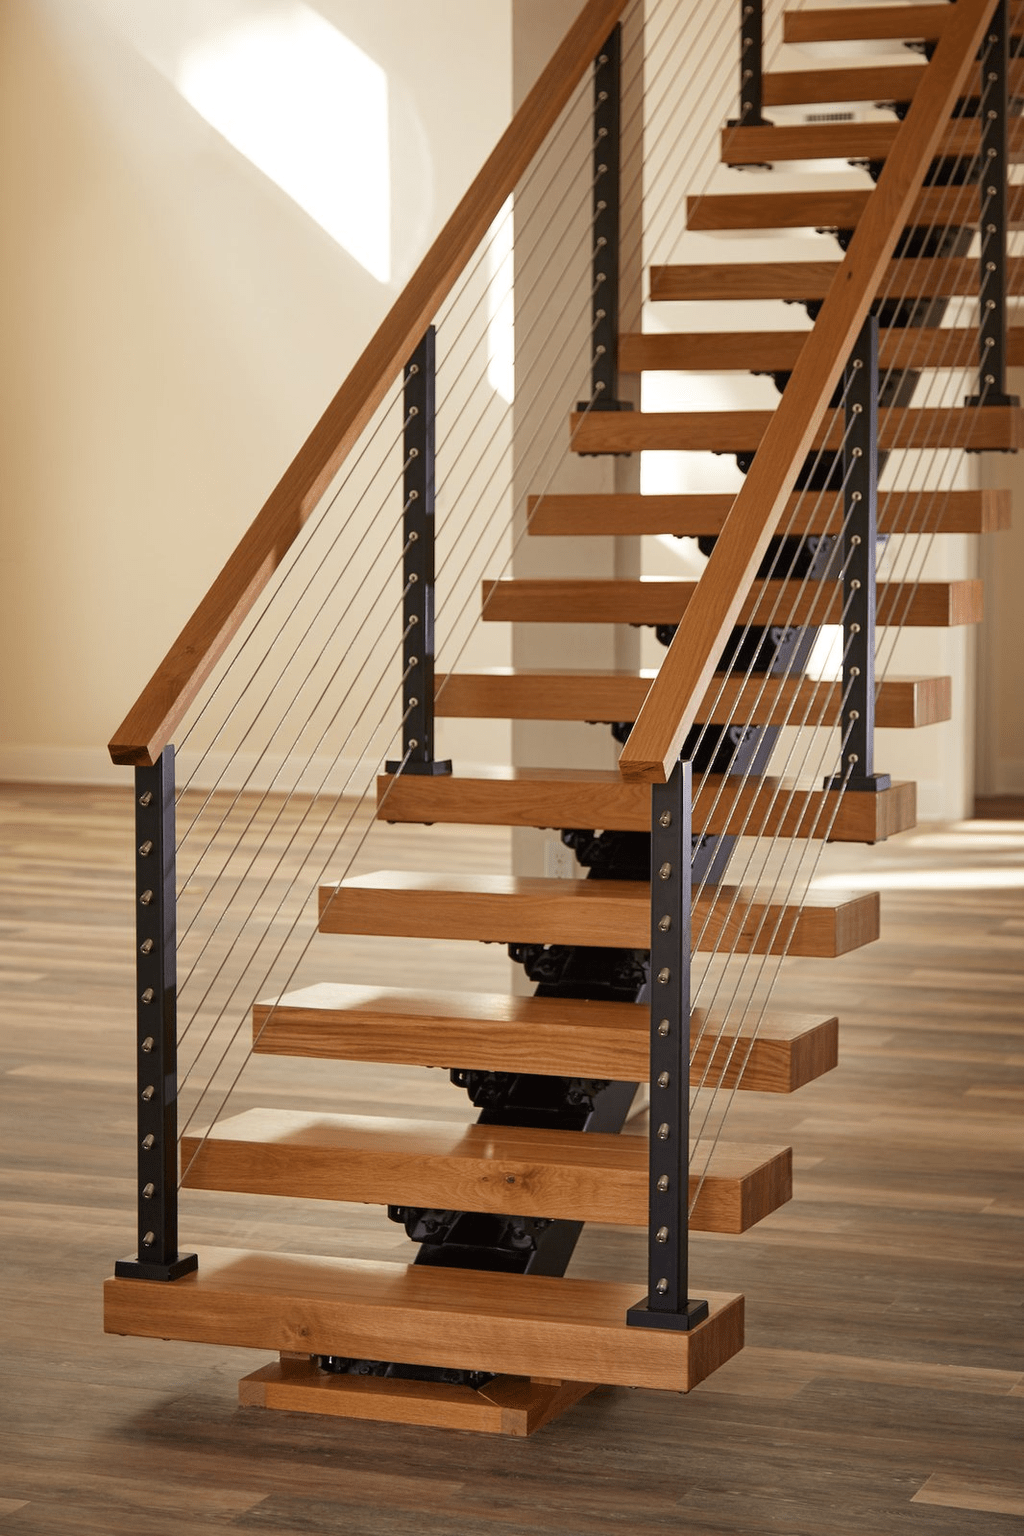 Beautiful Home Stairs Design Ideas With Modern Style 08